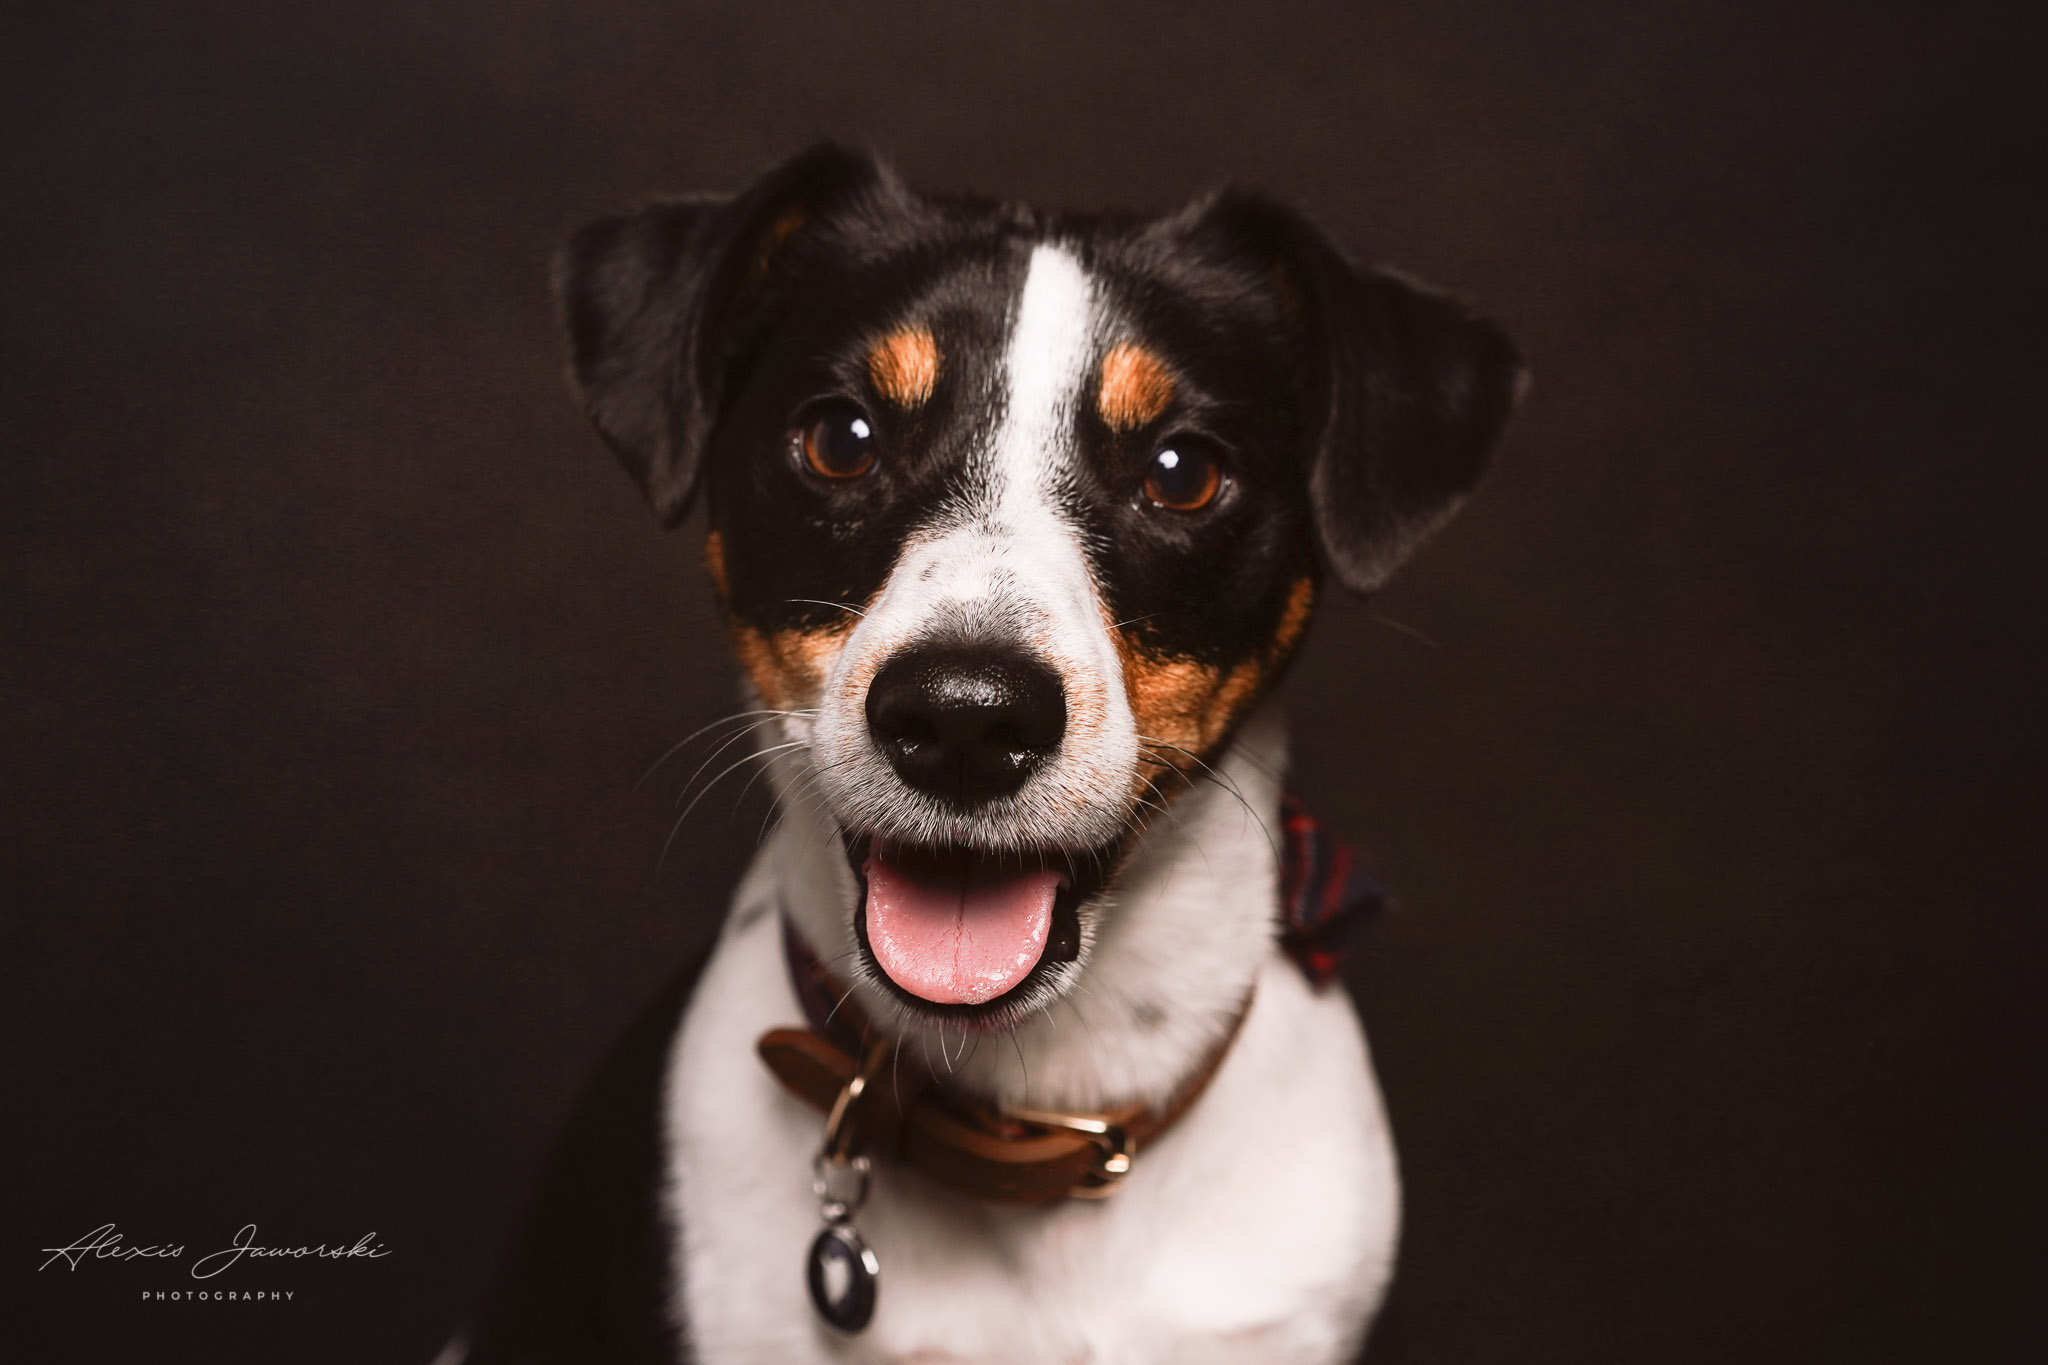 A photo of a Jack Russel Terrier